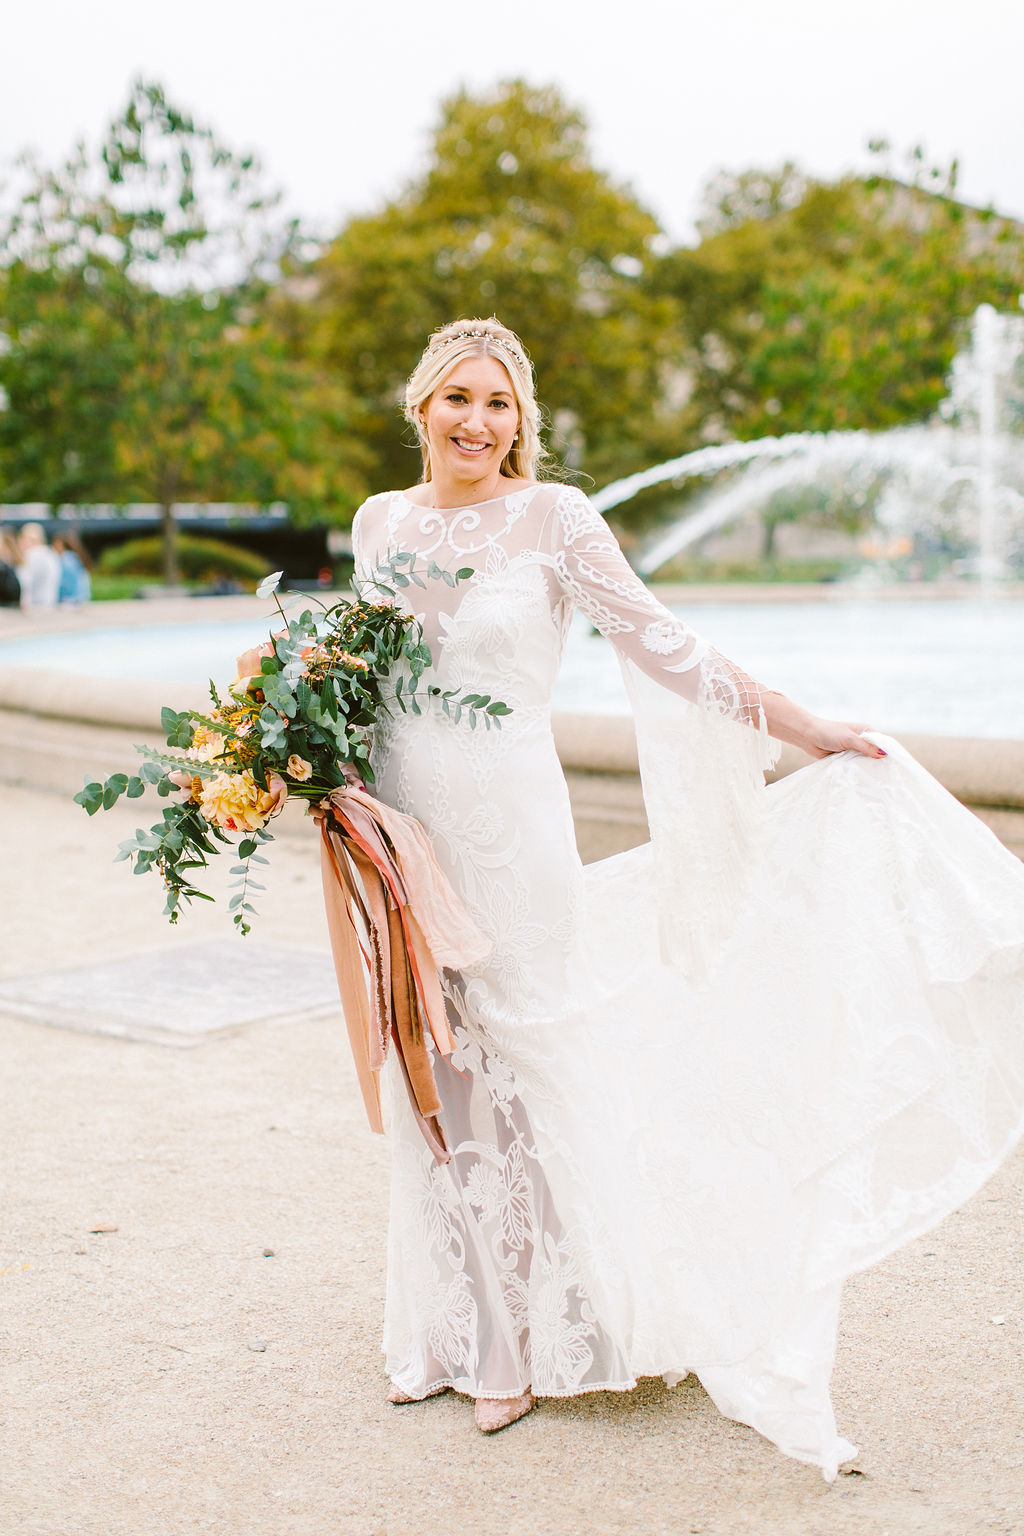 October Wedding in Philadelphia at Moulin by The Styled Bride and Redfield Photography | www.thestyledbride.com